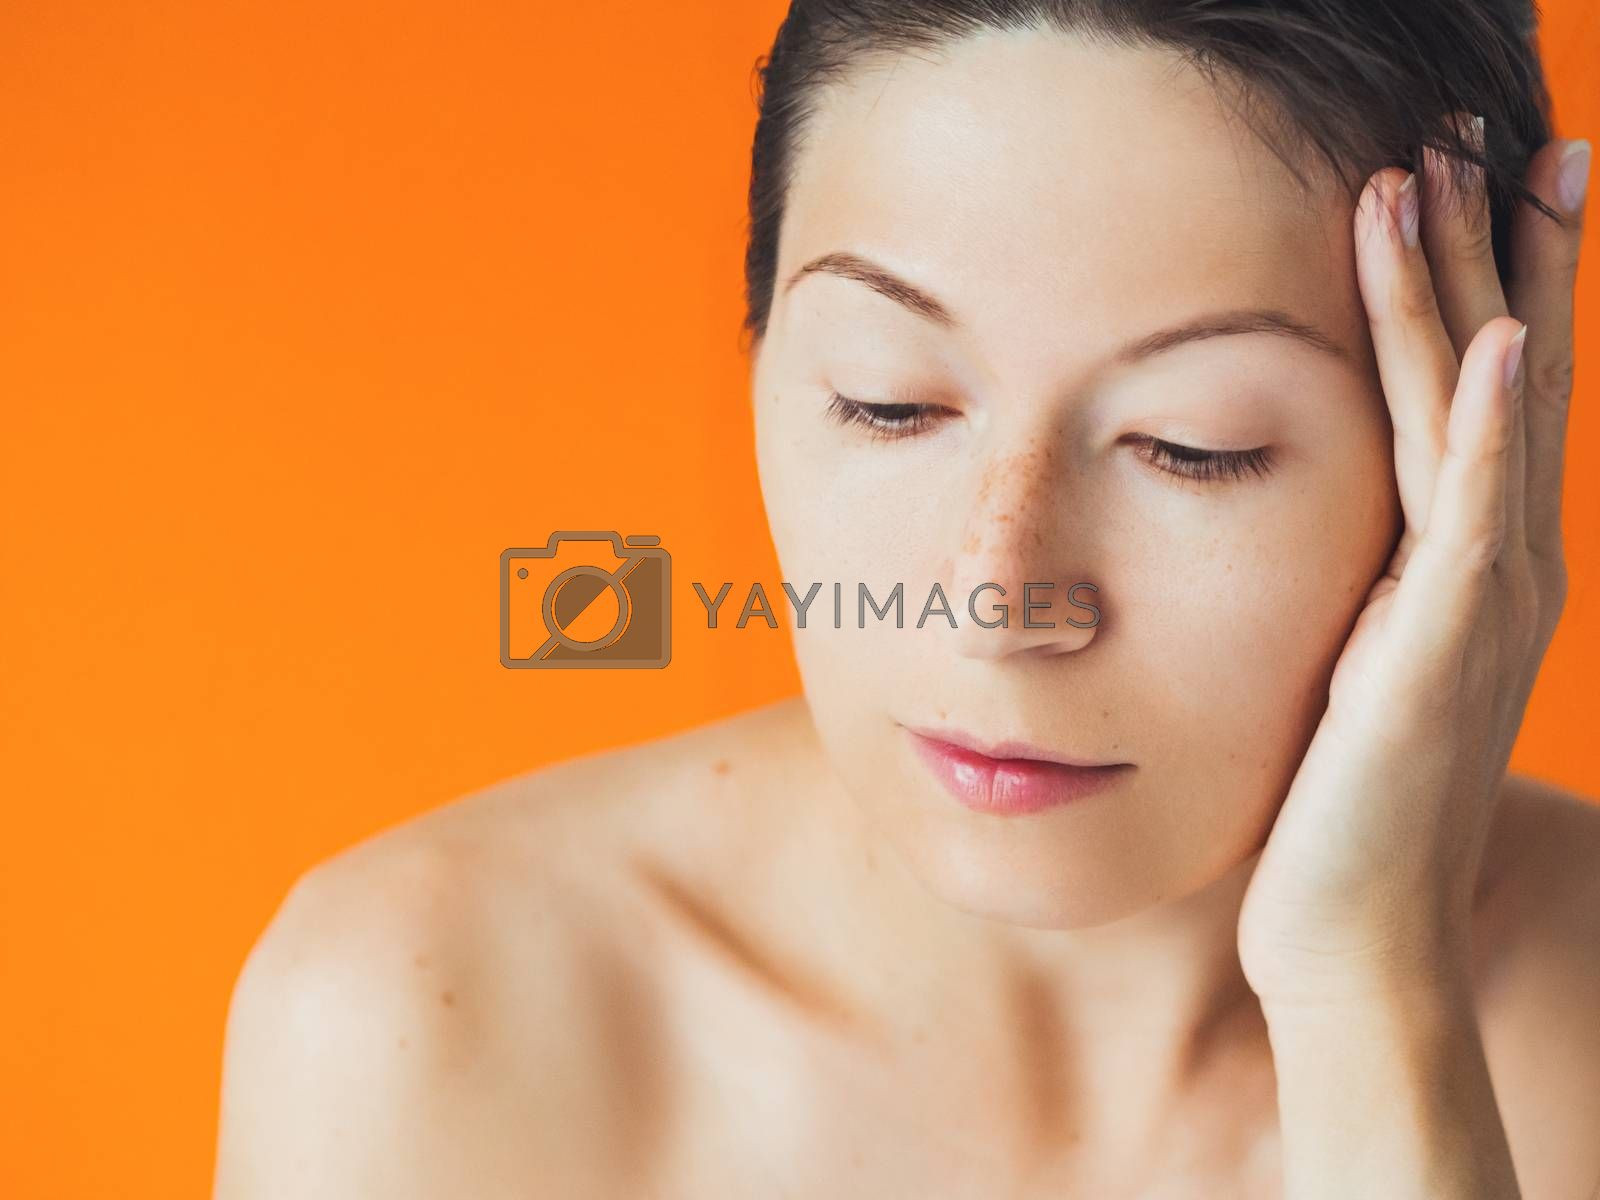 Portrait of woman with freckles on orange monochrome background. No make up. Natural beauty on bright and colorful backdrop. Banner with copy space.